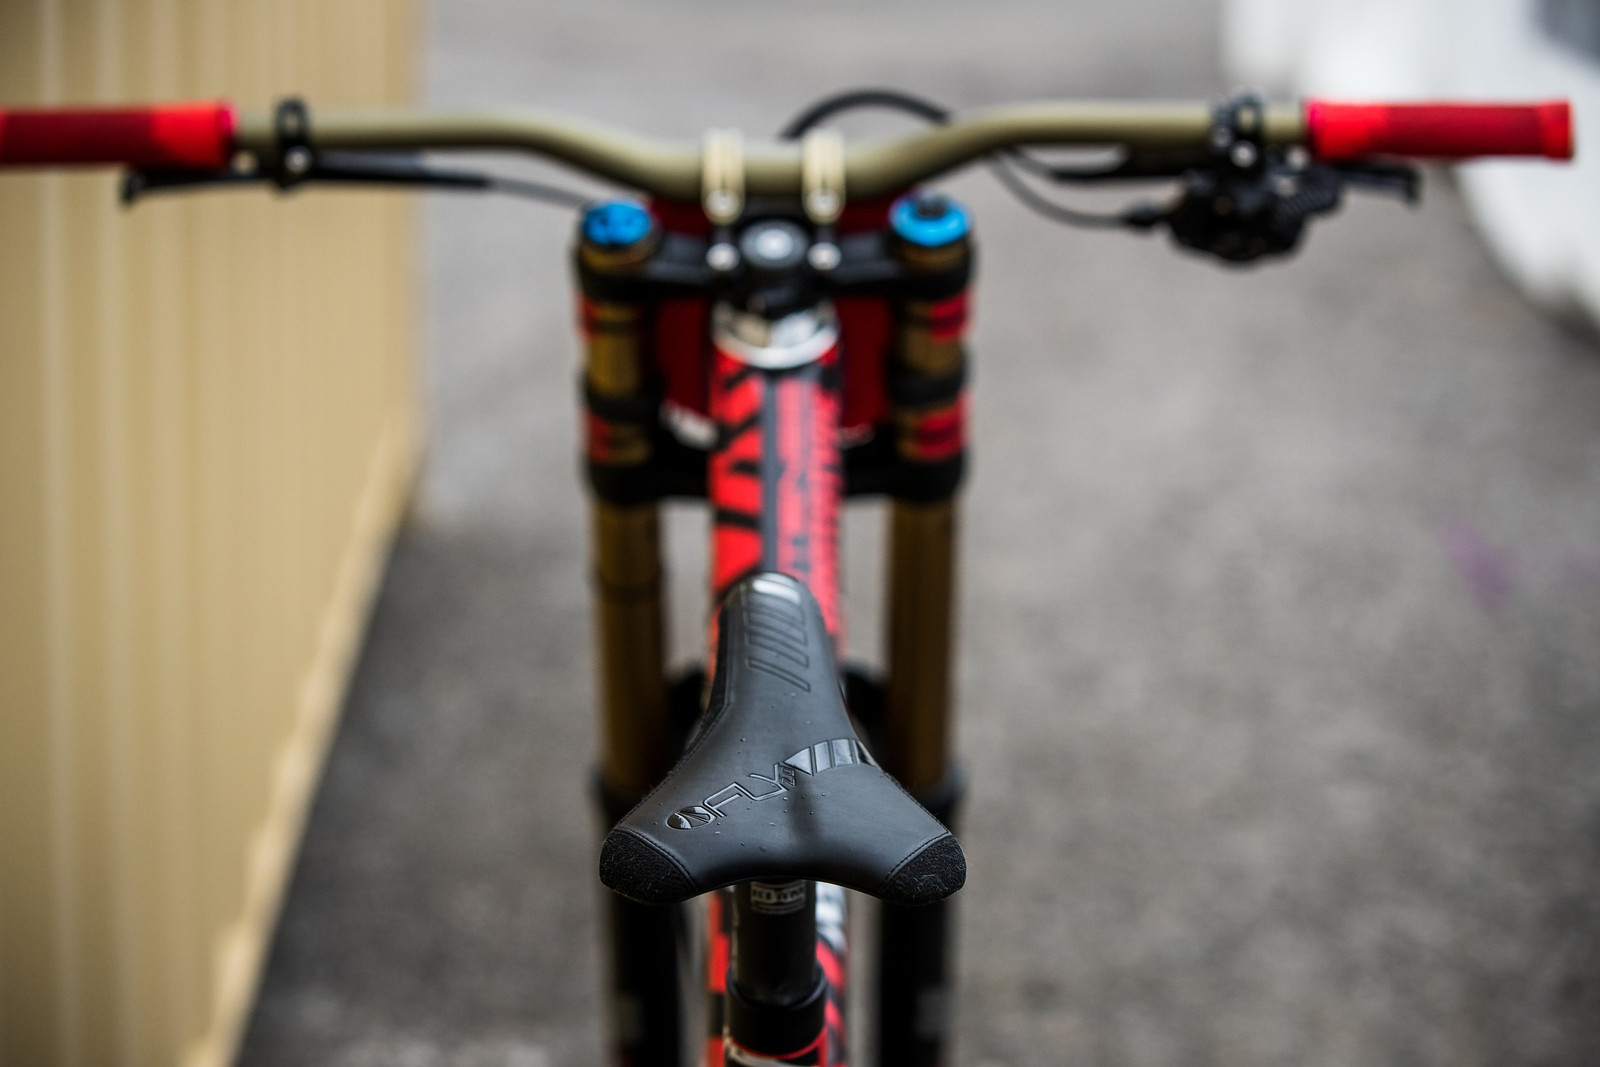 Aaron Gwin's Intense M279 at 2019 Worlds MSA - Aaron Gwin's Intense M279 at 2019 Worlds MSA - Mountain Biking Pictures - Vital MTB